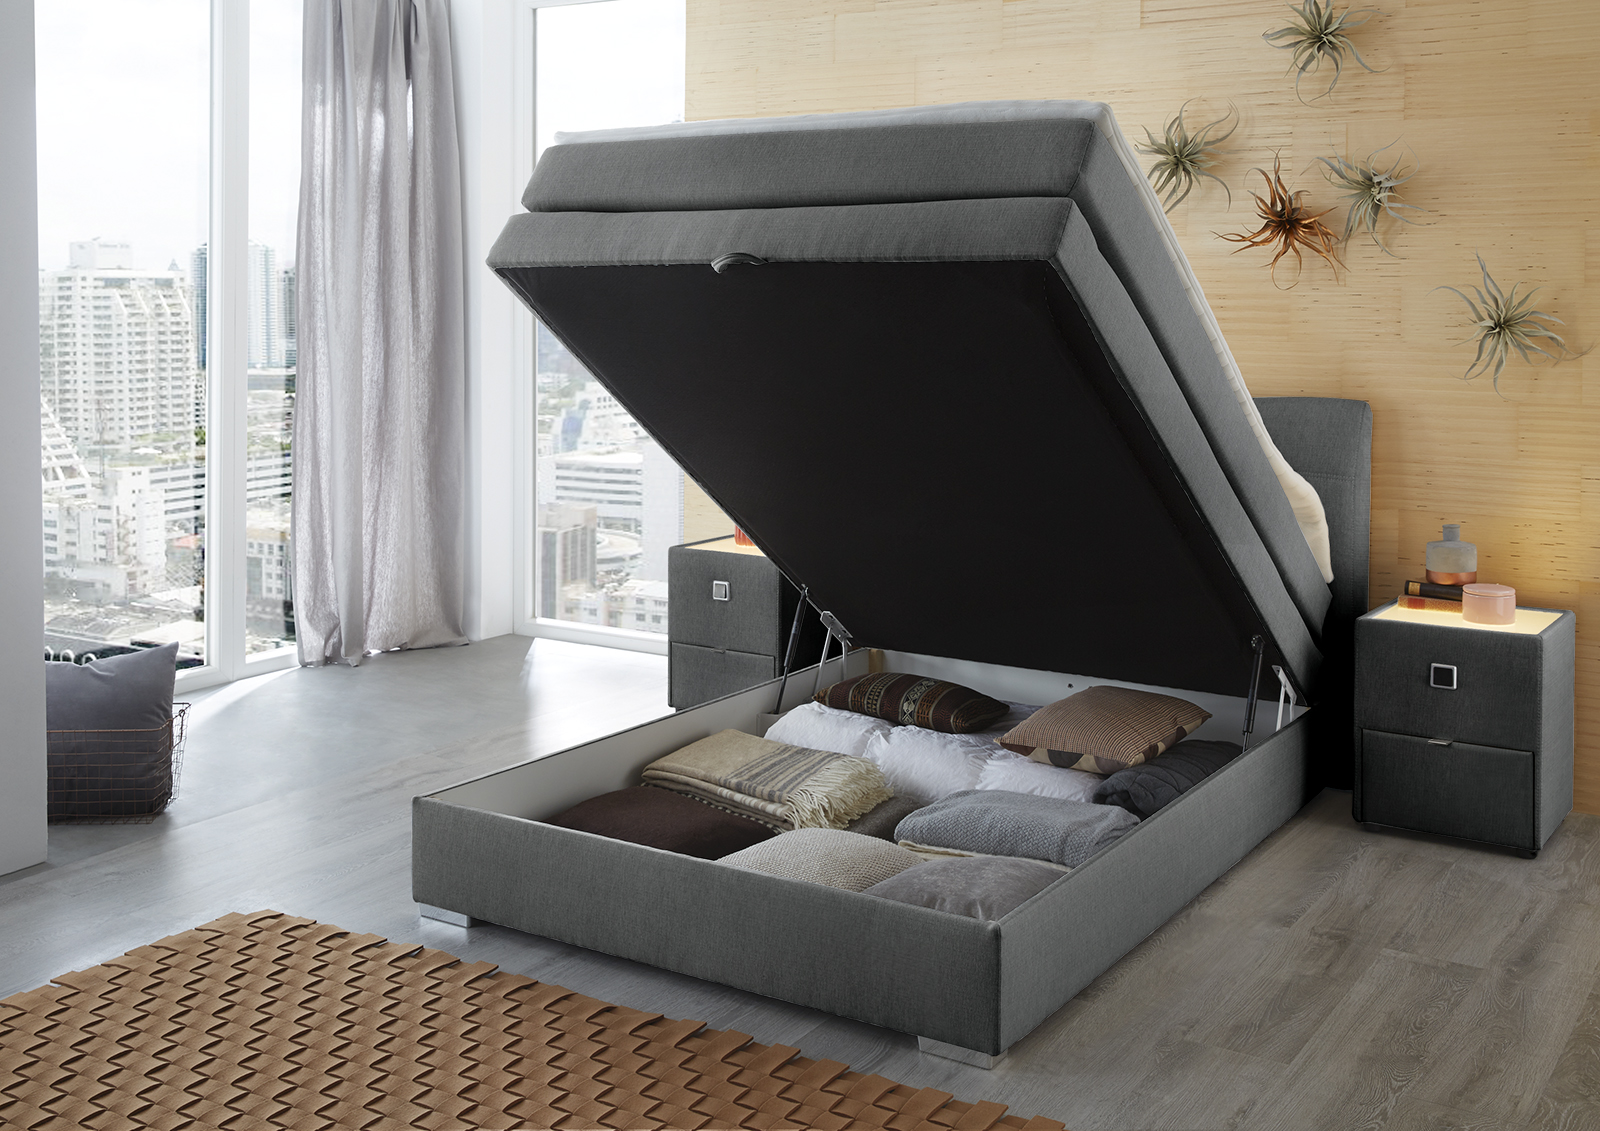 amelie boxspringbett 140x200 cm mit intergriertem bettkasten braun. Black Bedroom Furniture Sets. Home Design Ideas